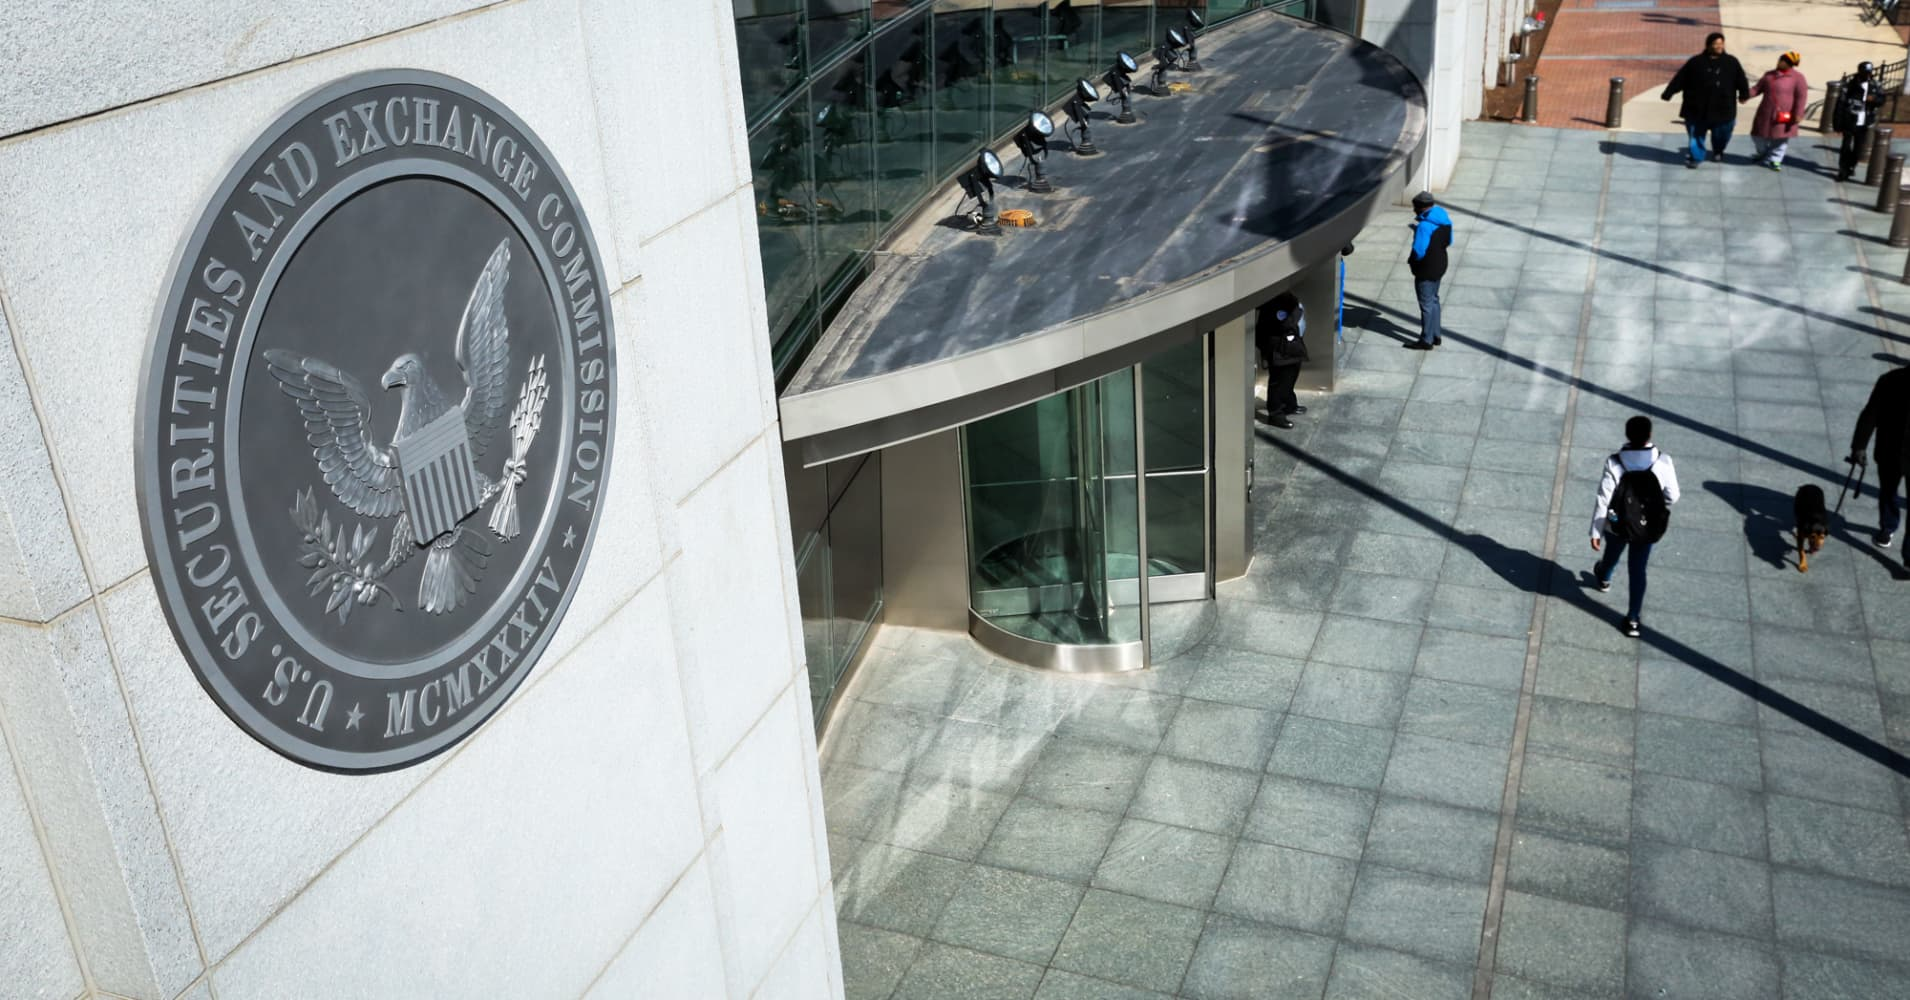 The U.S. Securities and Exchange Commission in Washington, D.C.